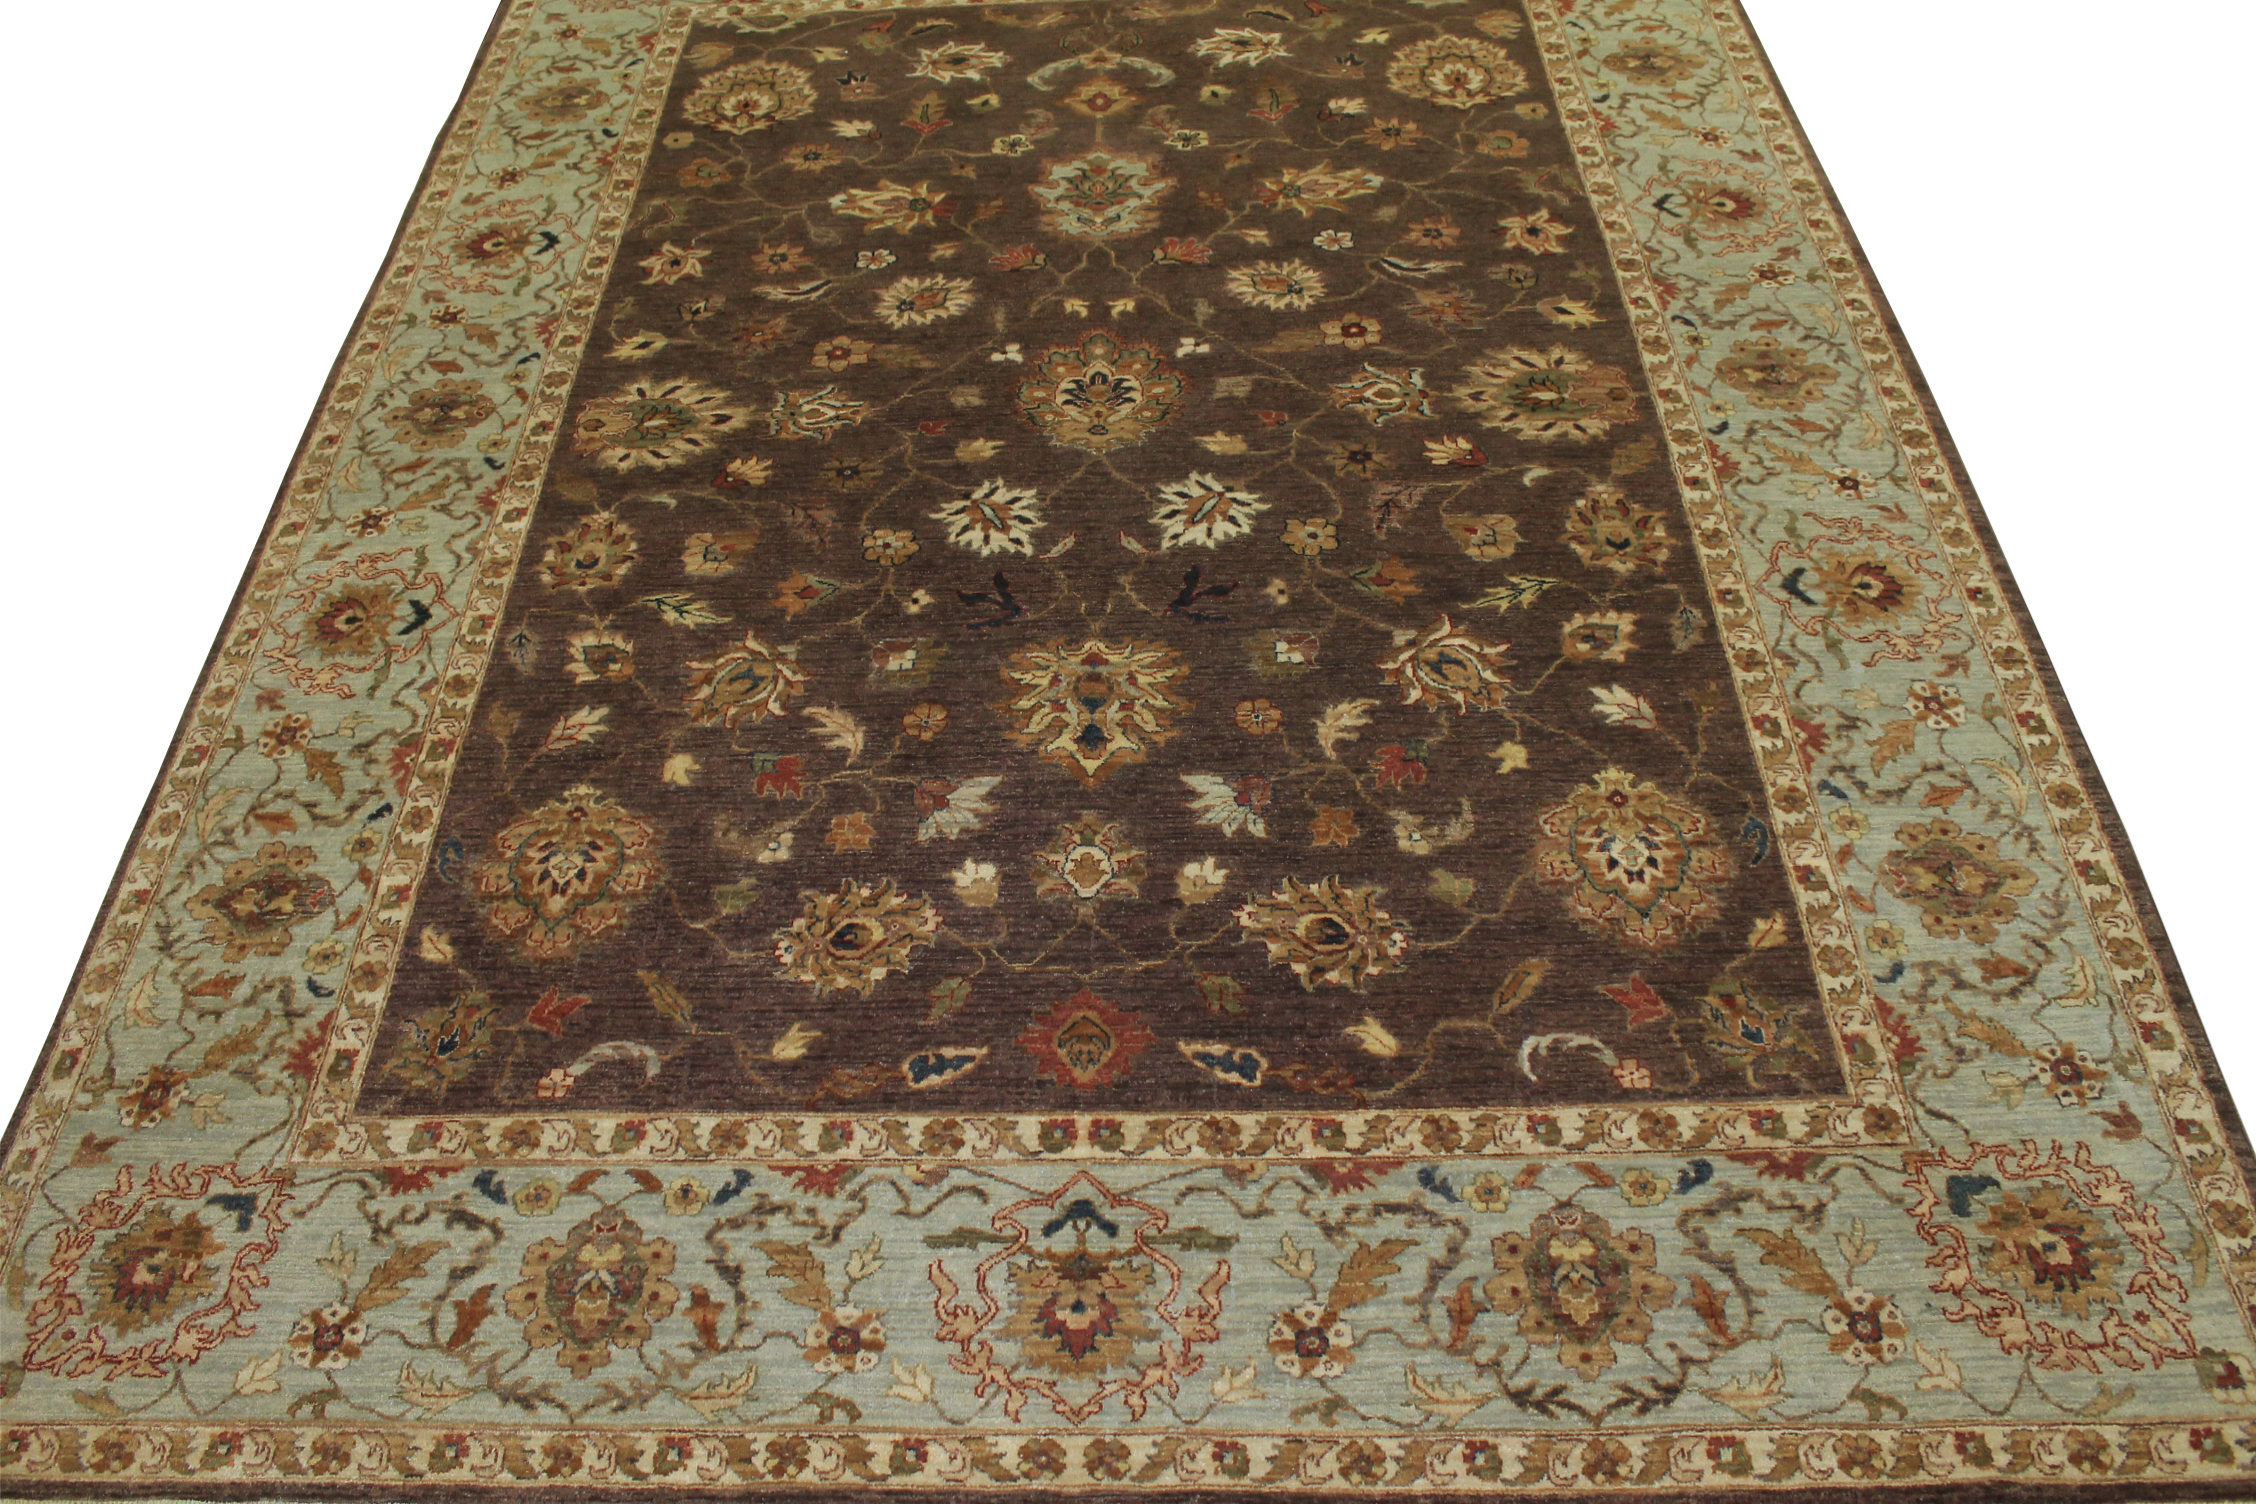 9x12 Traditional Hand Knotted Wool Area Rug - MR13134